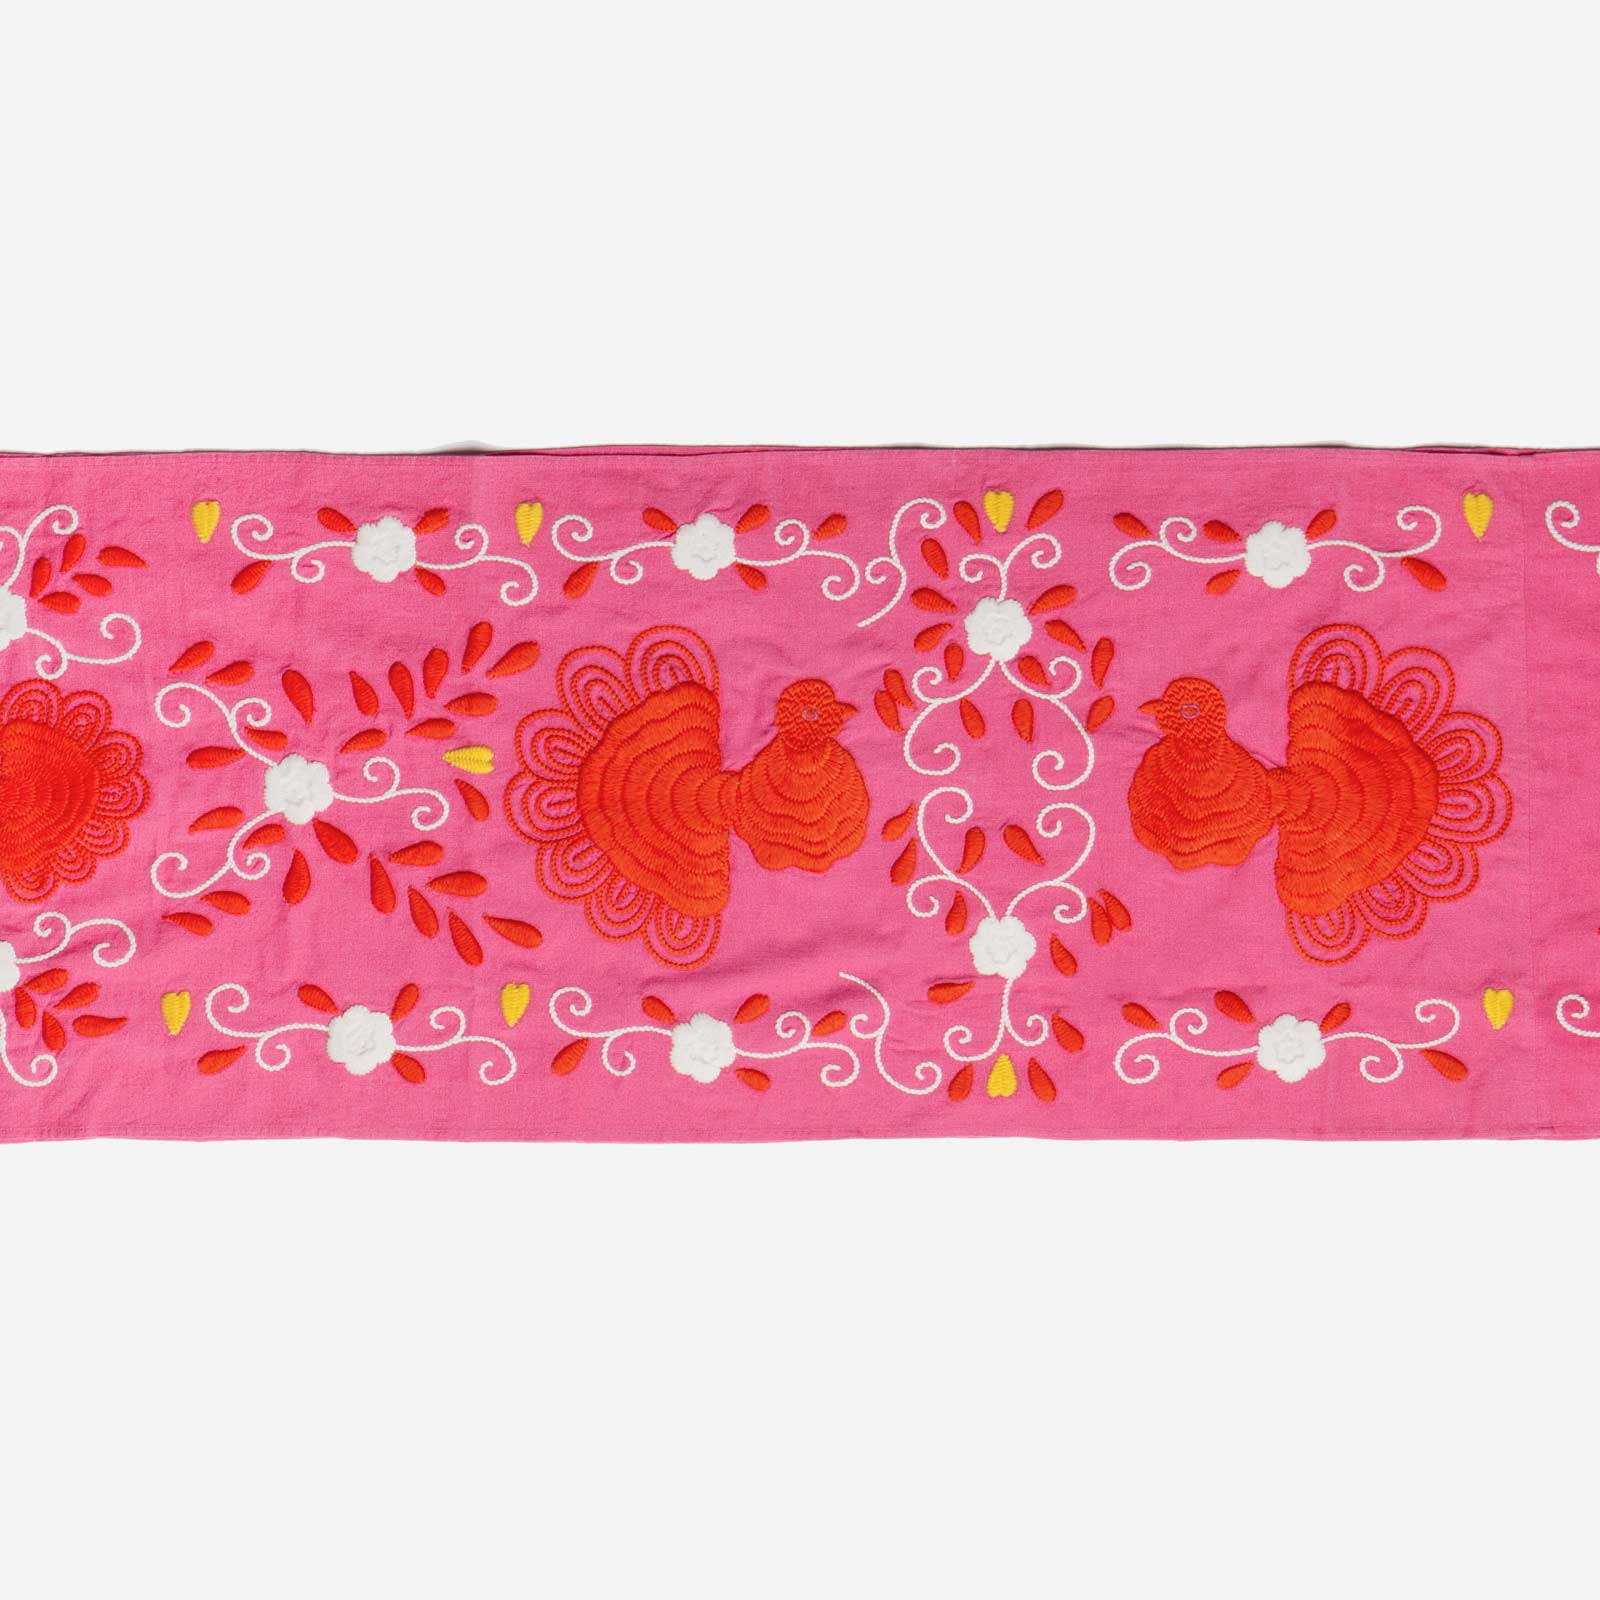 Peacock Table Runner Pink Multi